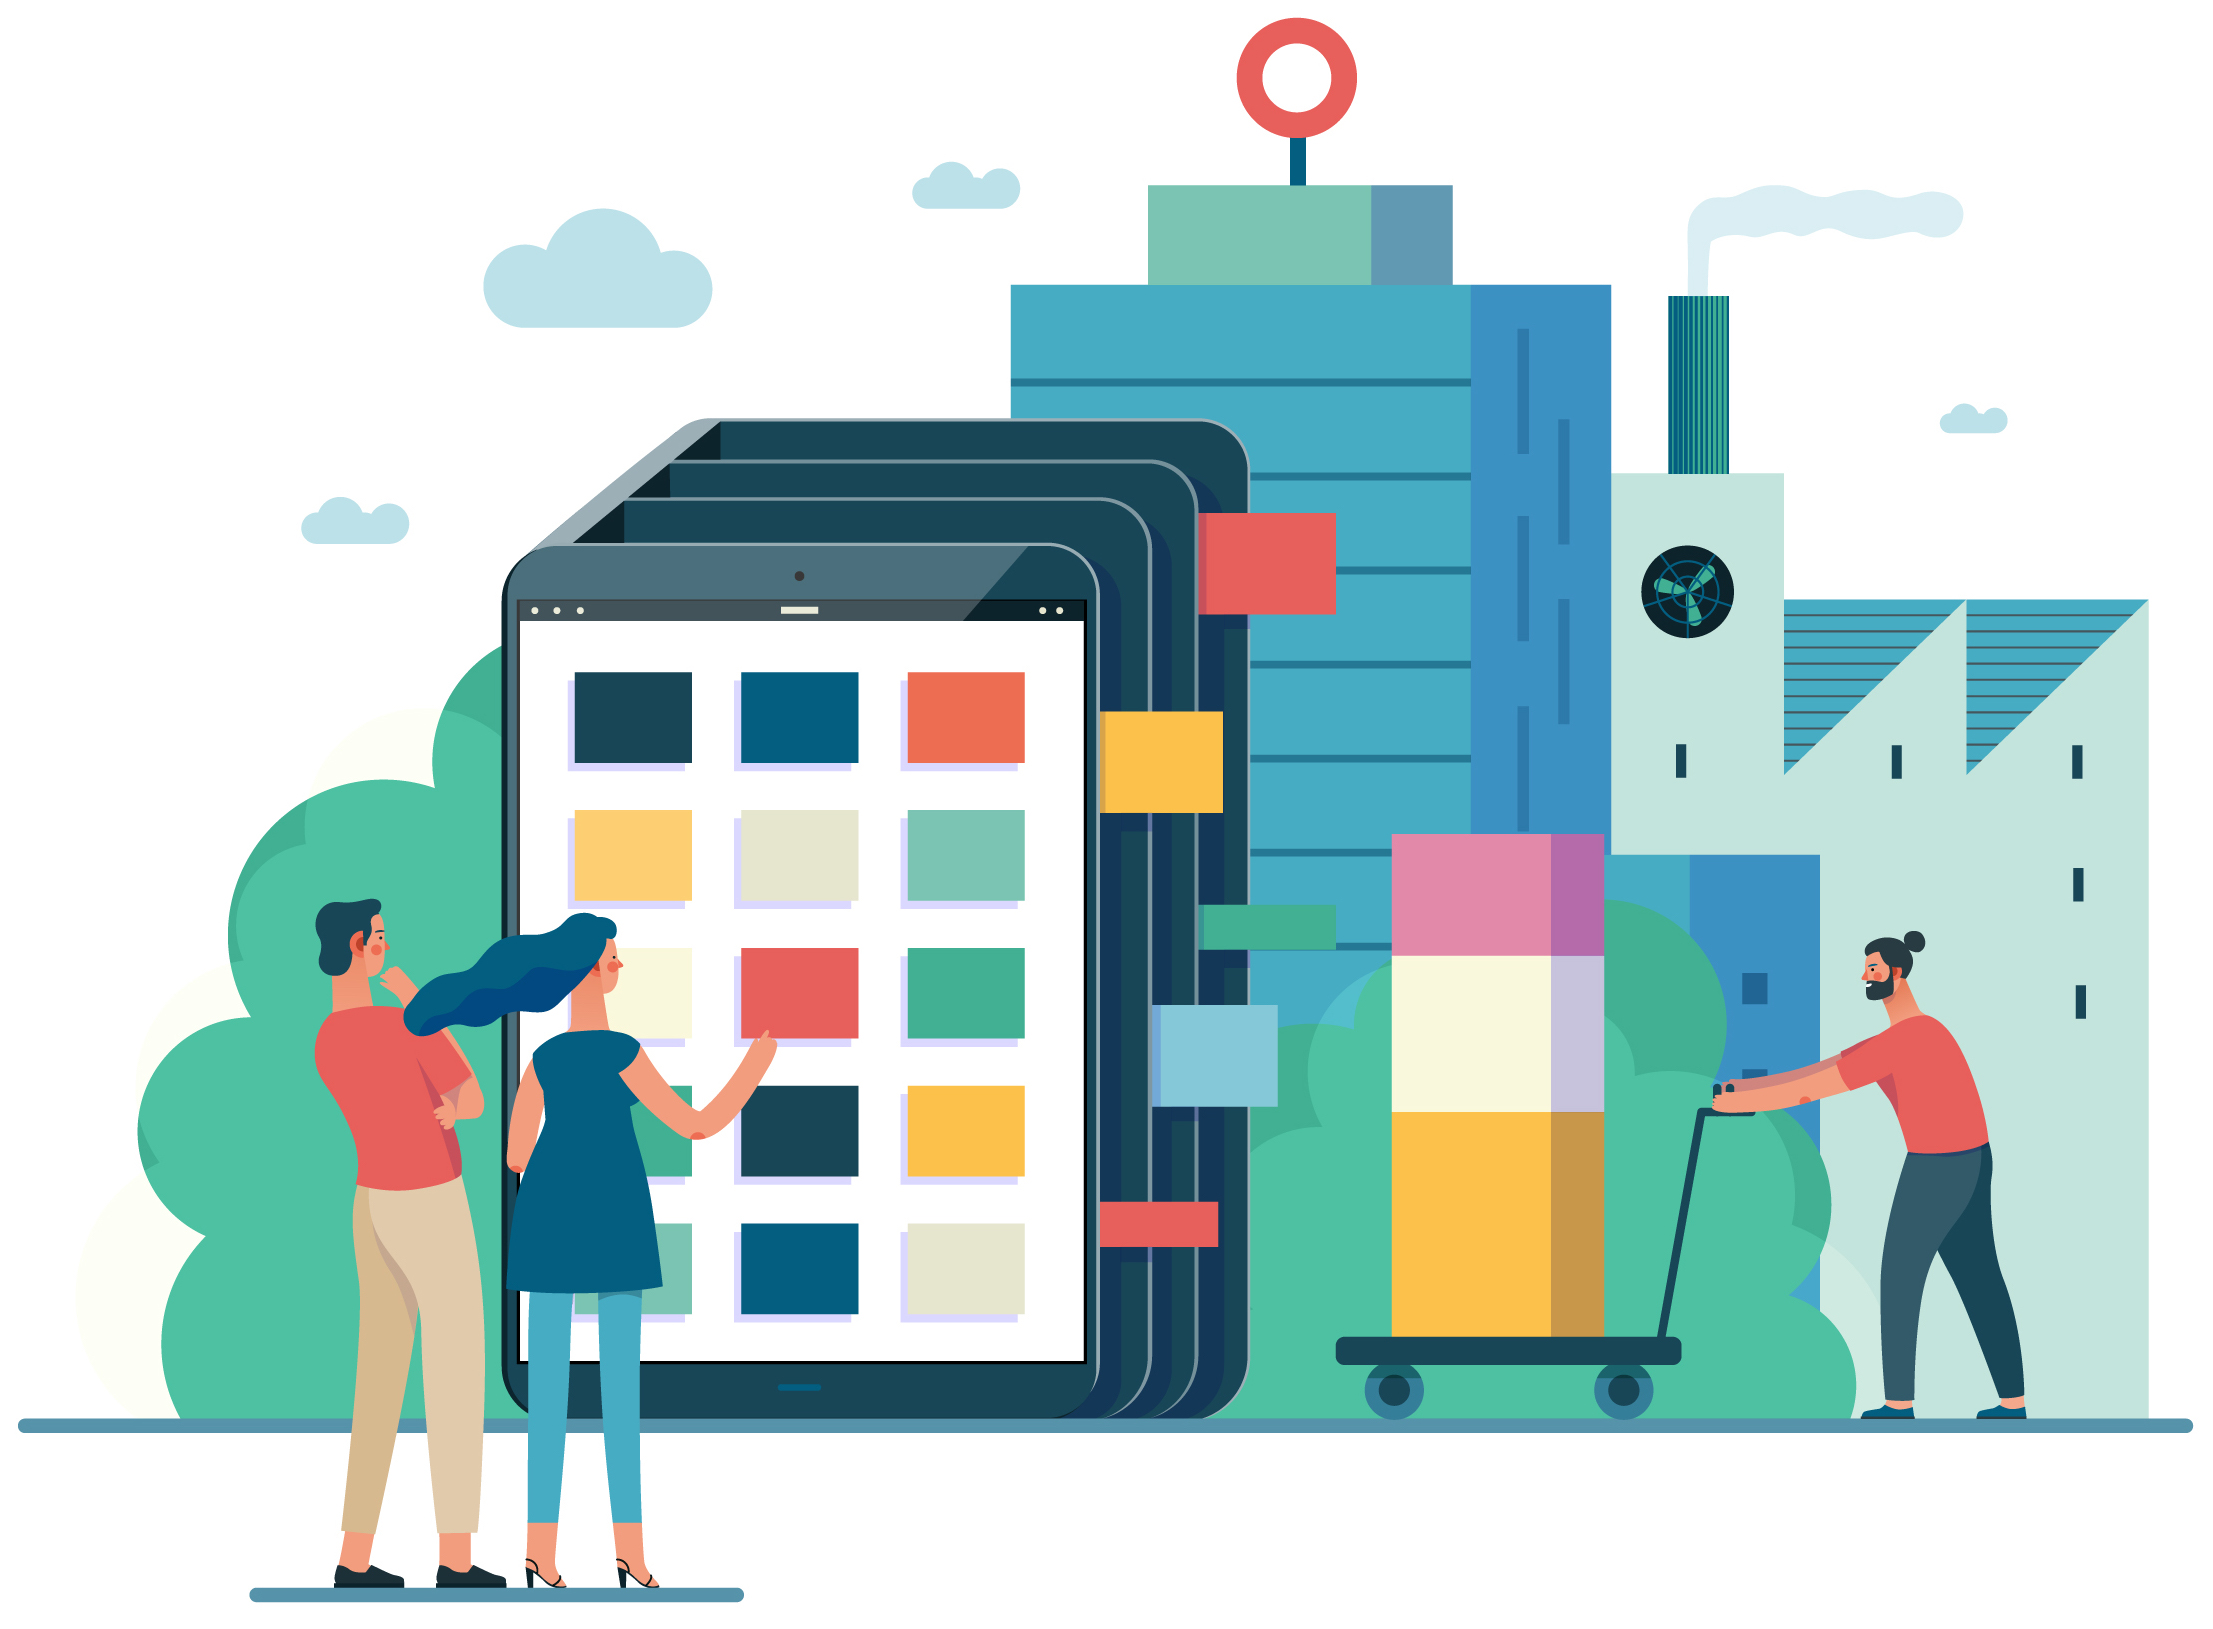 The Innovator's Toolkit: The Importance of Product-Market Fit